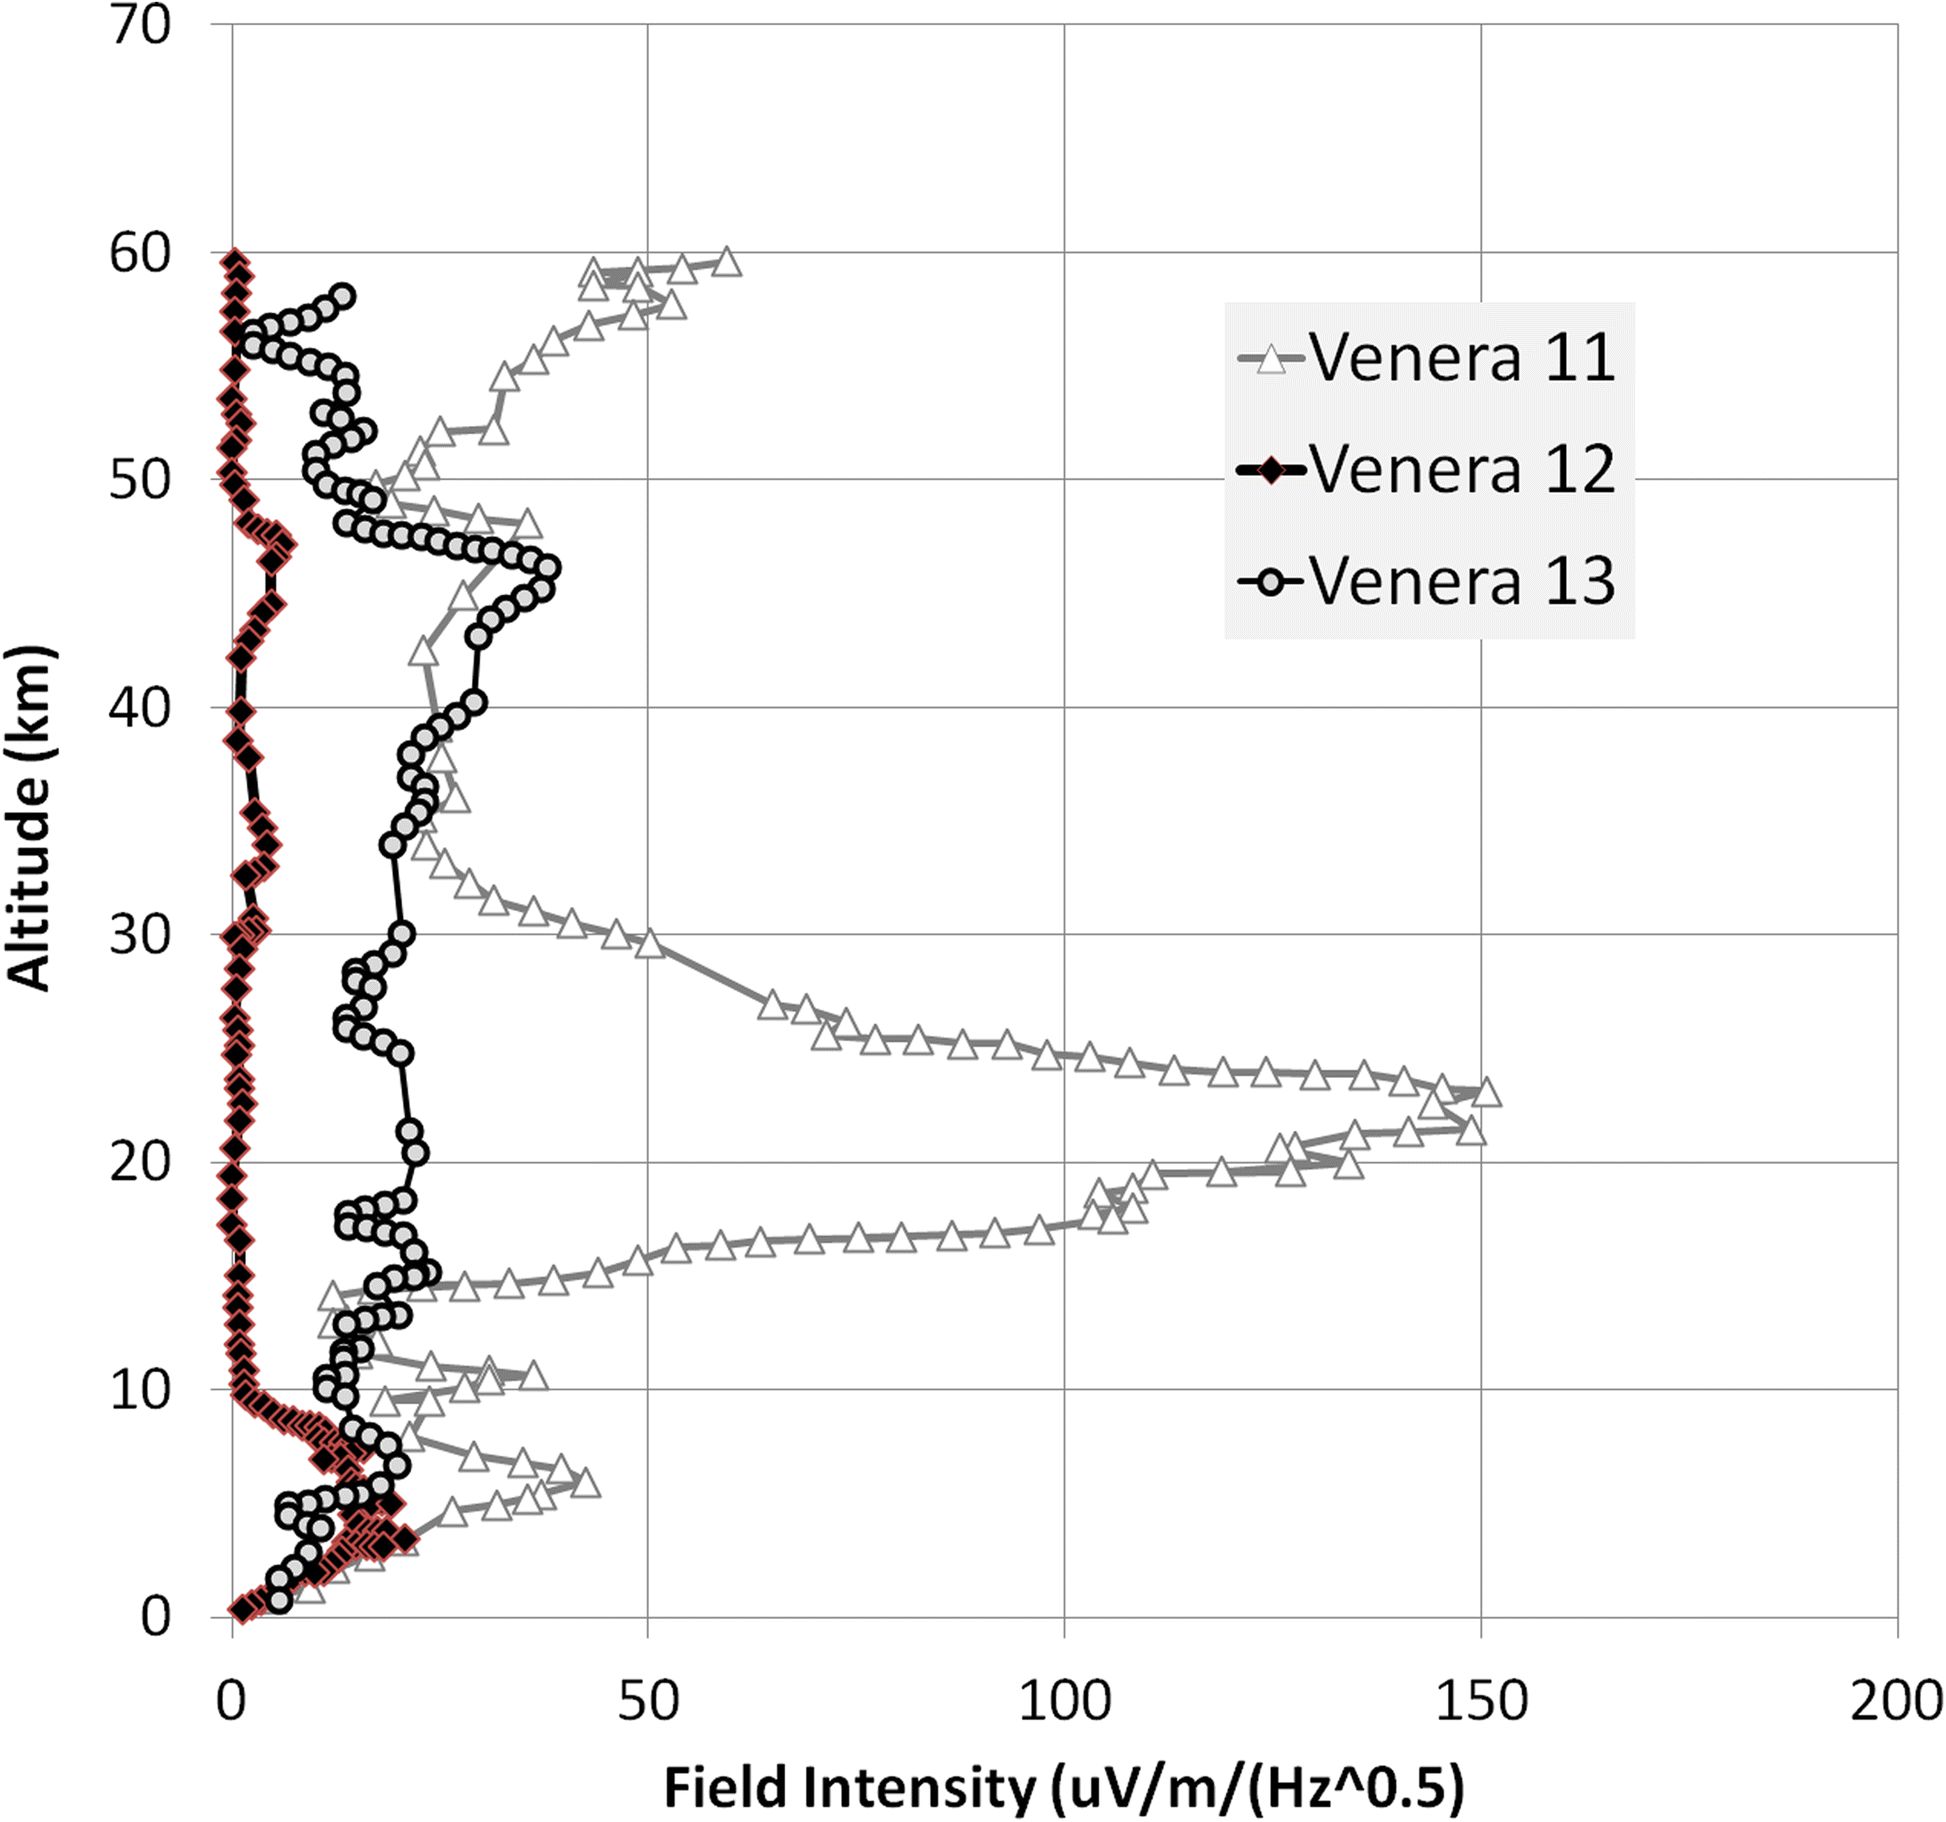 Lightning Detection On Venus A Critical Review Progress In Earth Topics Related To Vlf Metal Detector Schematic Fig 7